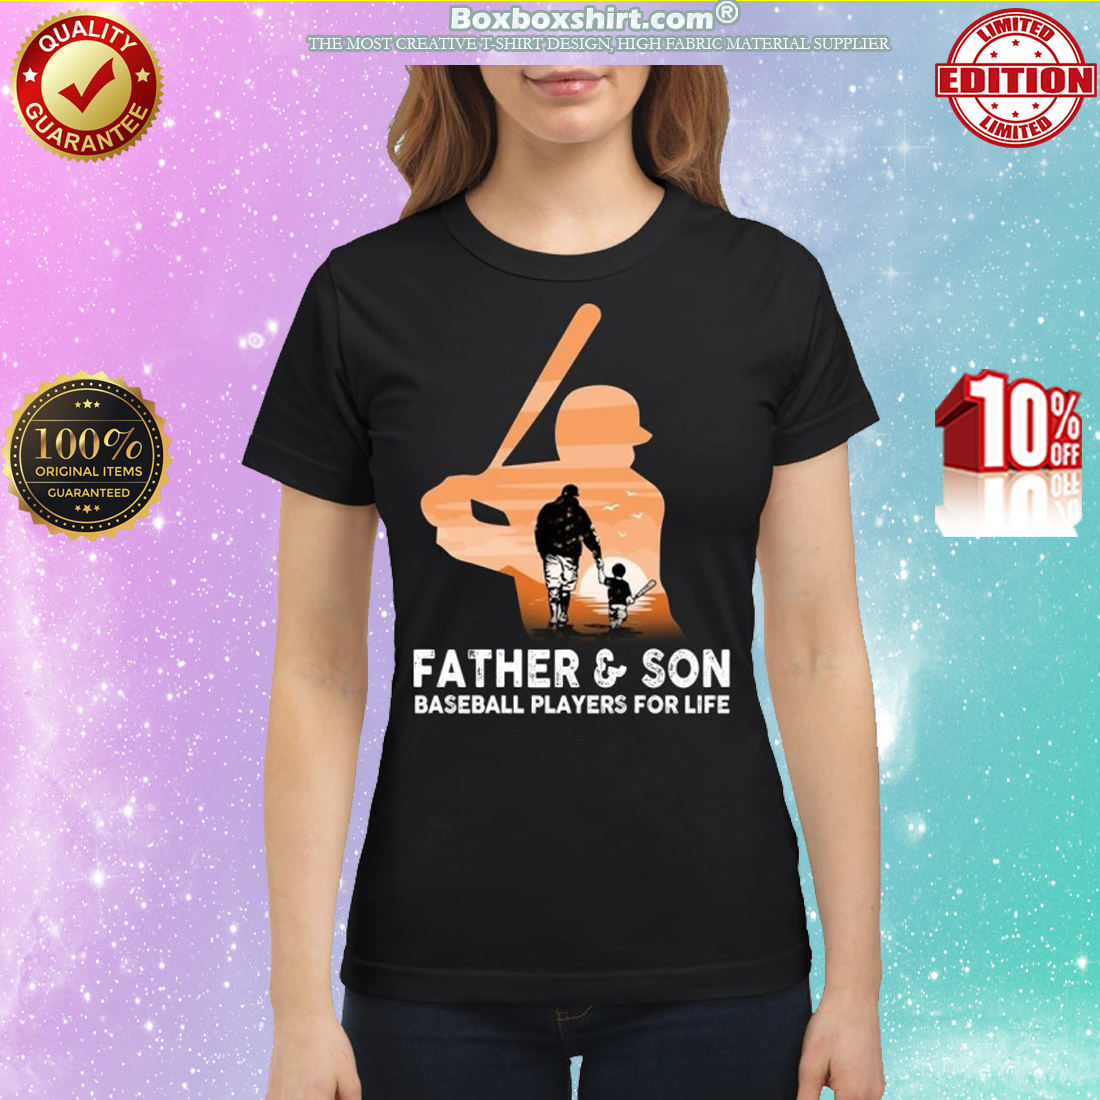 Father and son baseball players for life classic shirt